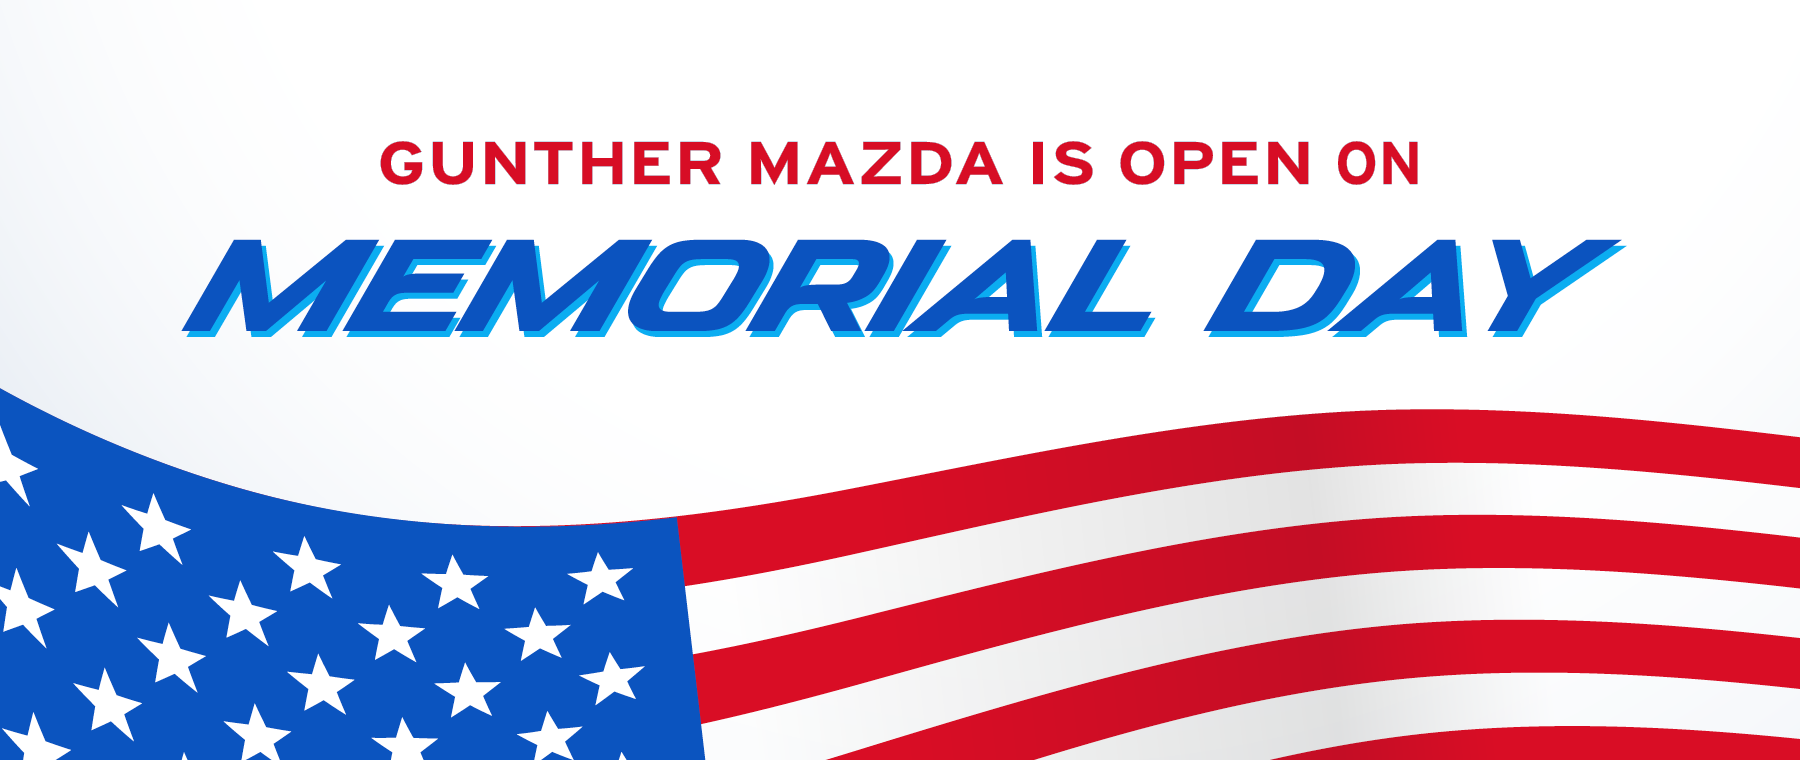 Gunther Mazda is open on Memorial Day.